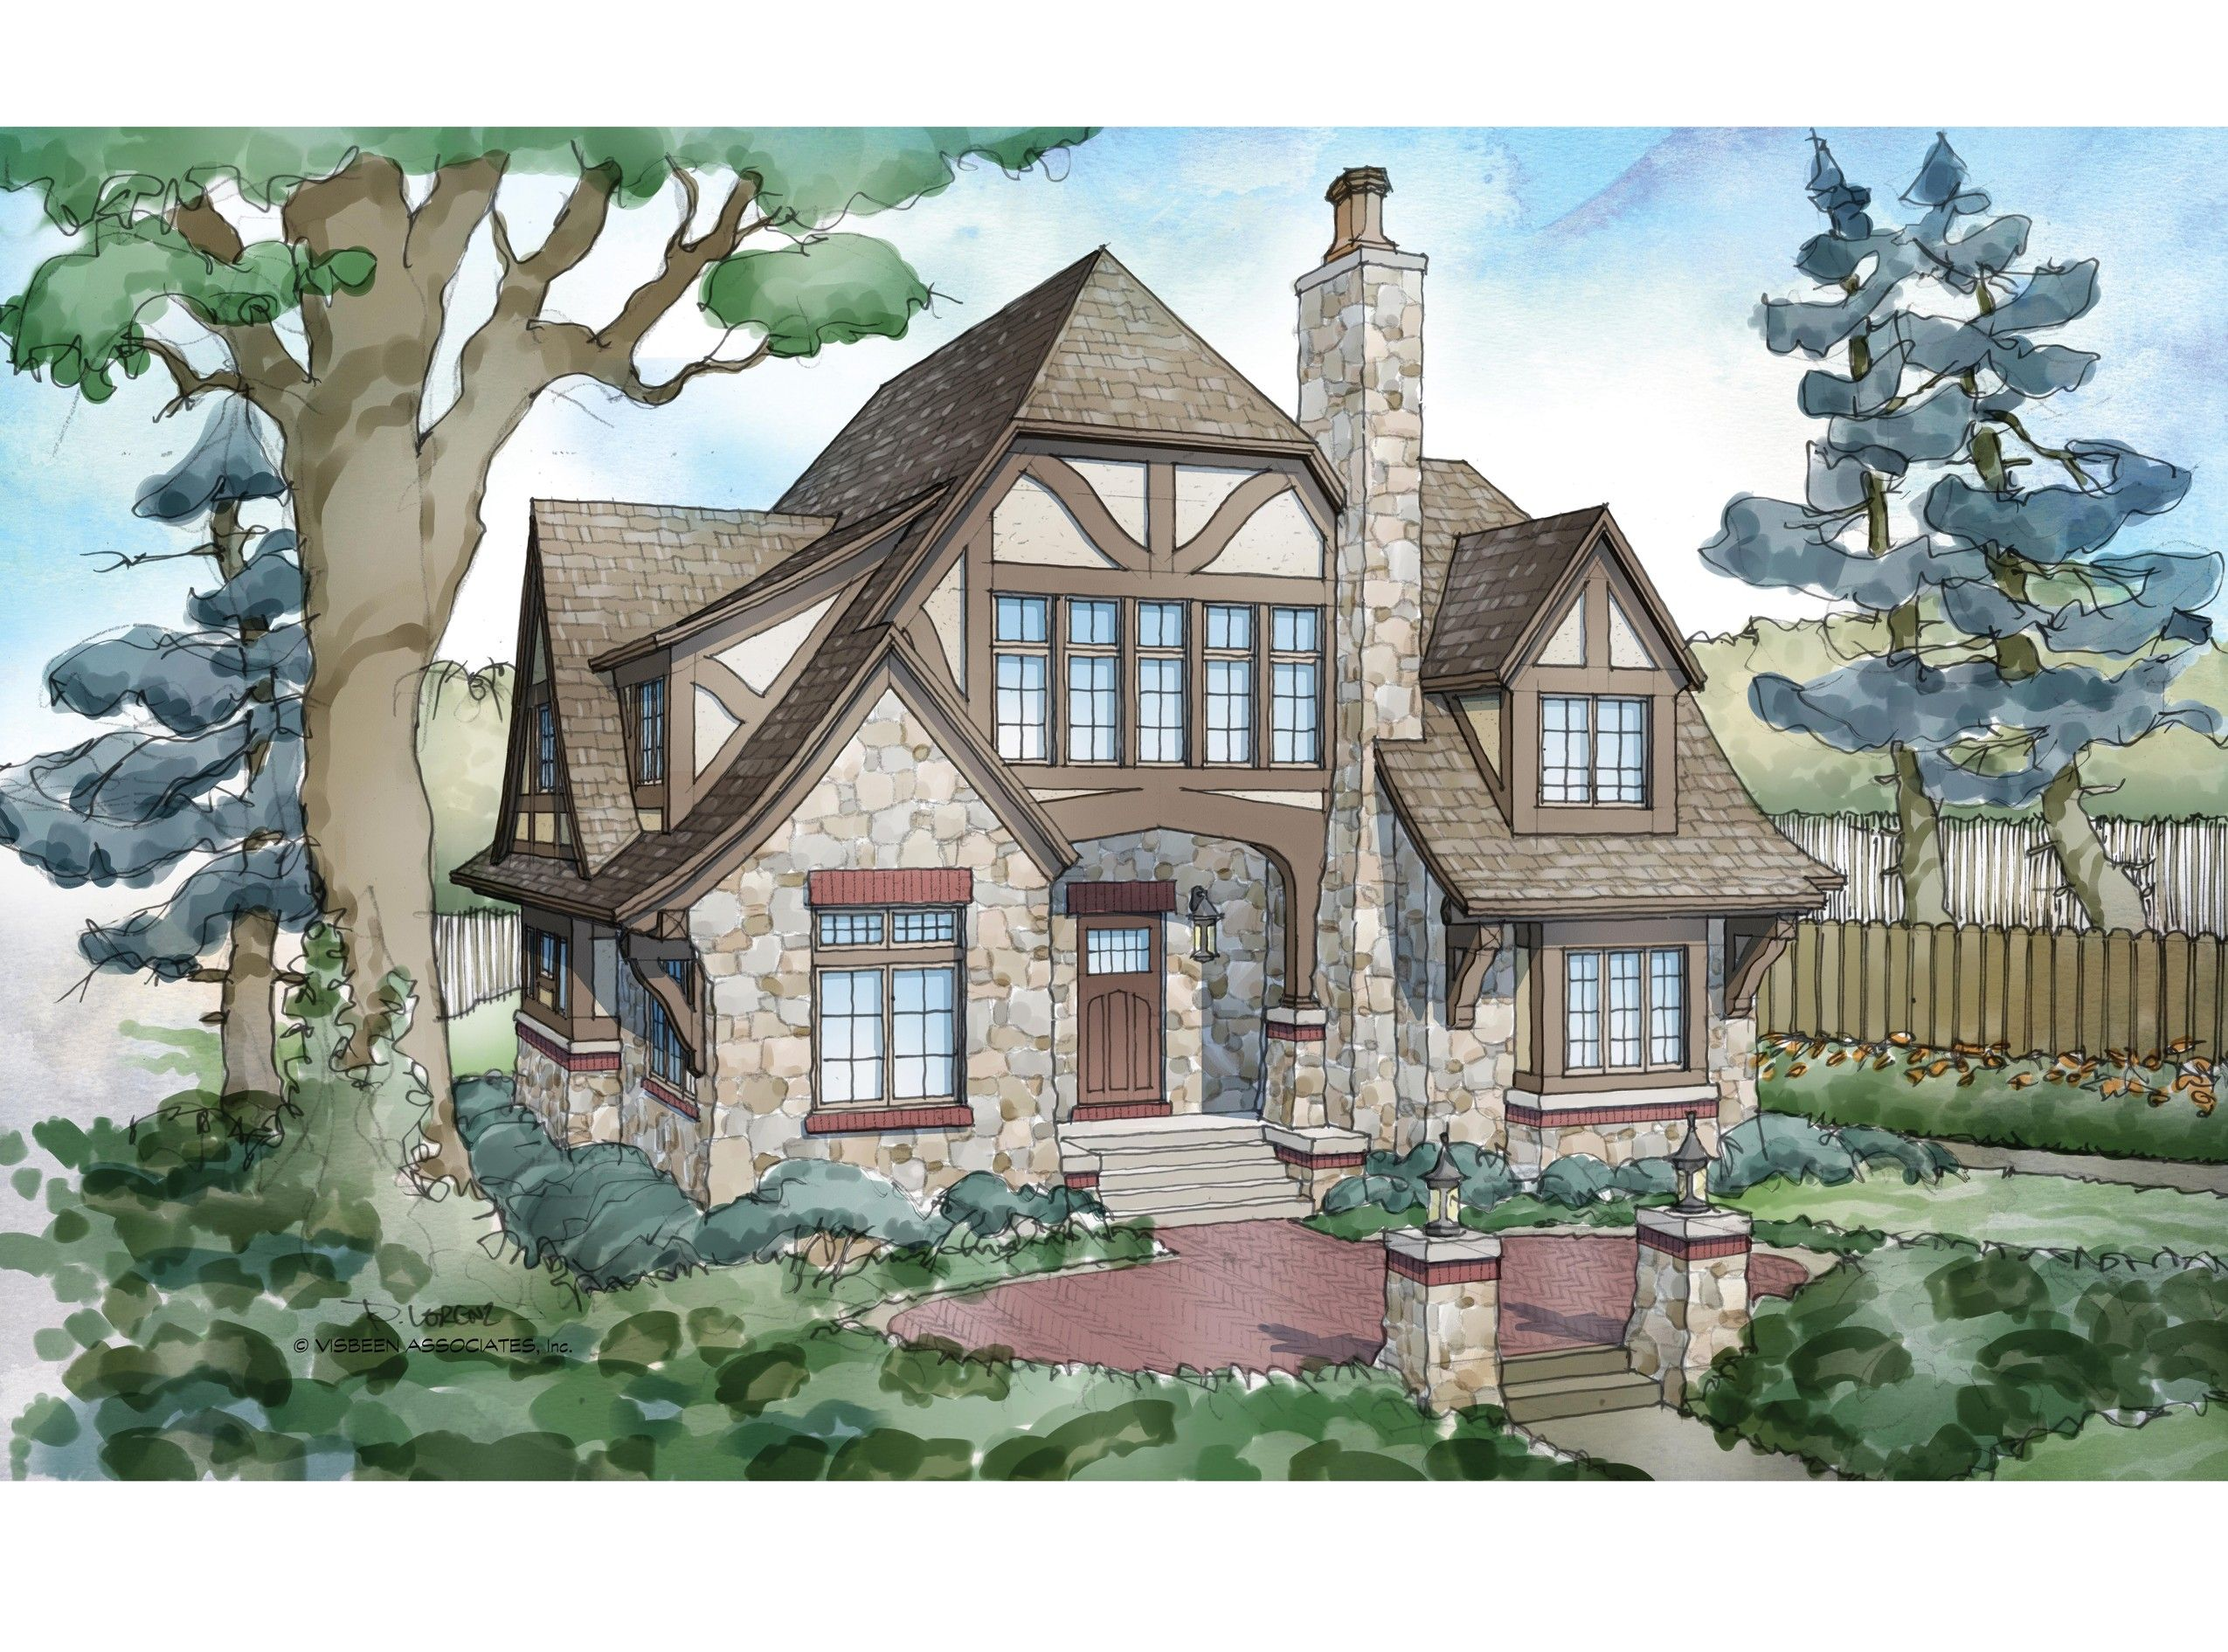 Tudor House Plan with 5824 Square Feet and 5 Bedrooms from Dream